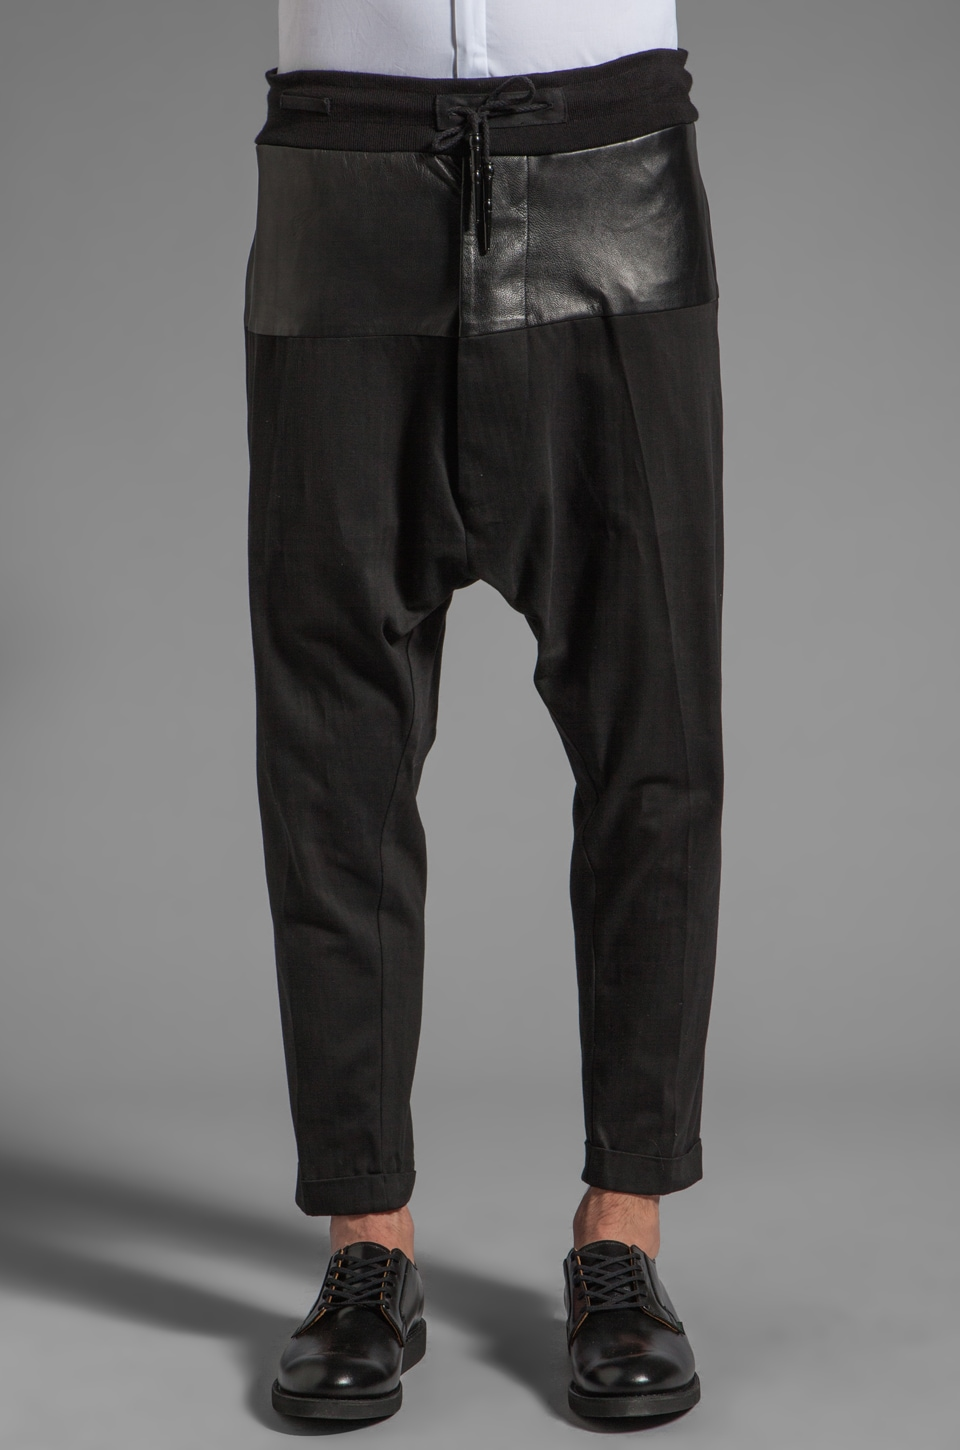 Sons of Heroes New Order Pant in Black